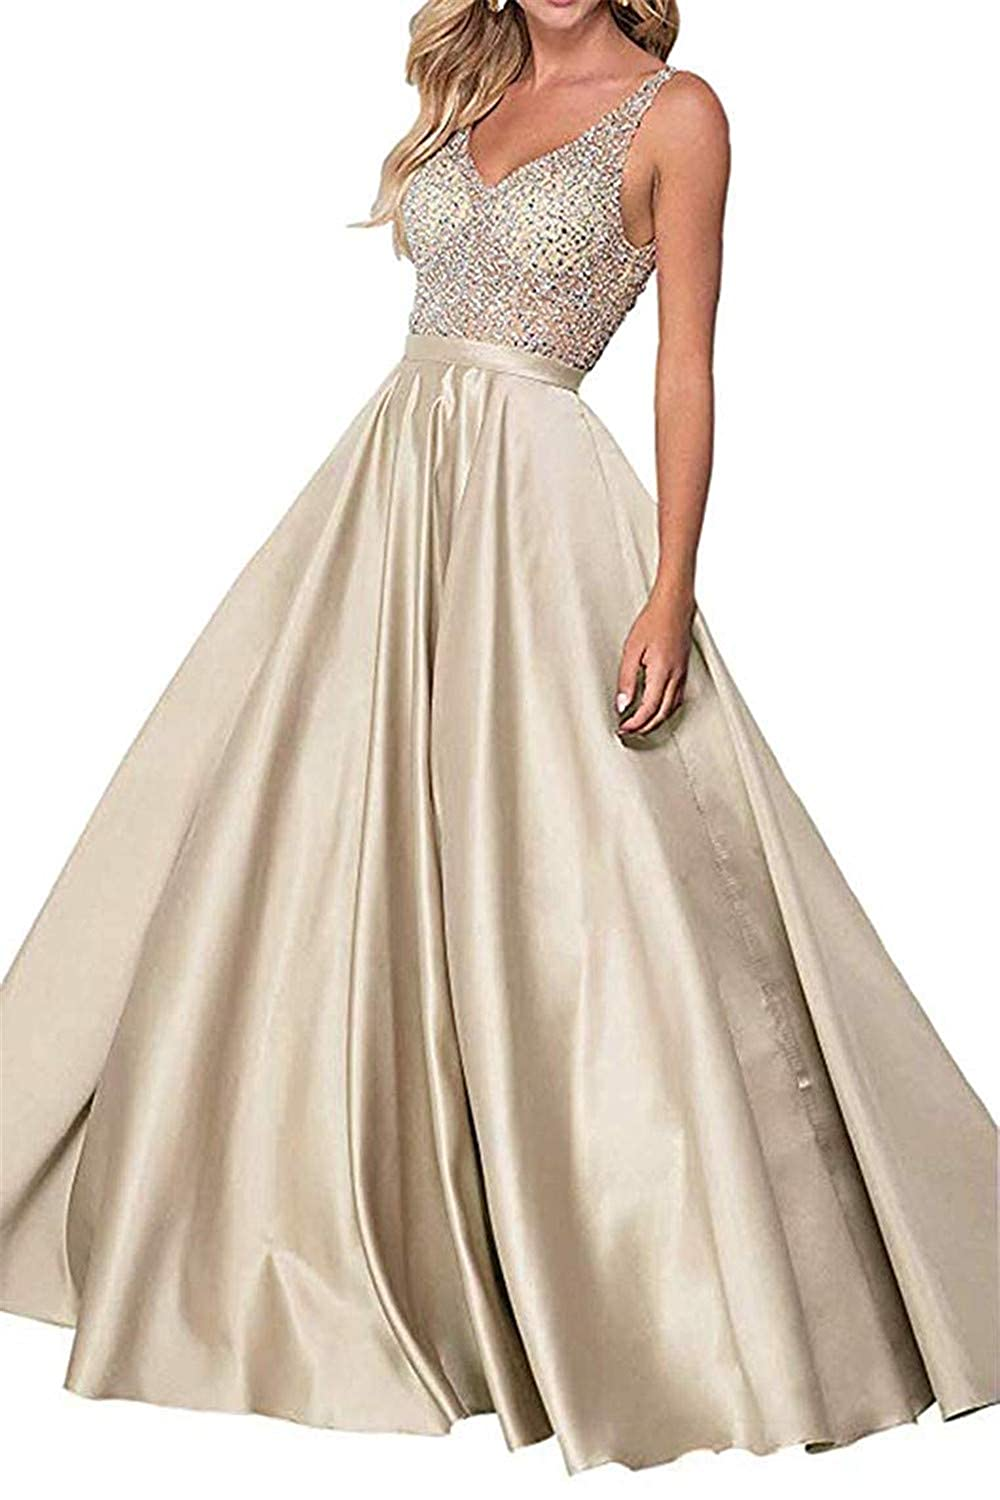 Champagne Sophie Women's ALine Long Prom Dresses Double VNeck Beaded Satin Evening Party Gowns S294